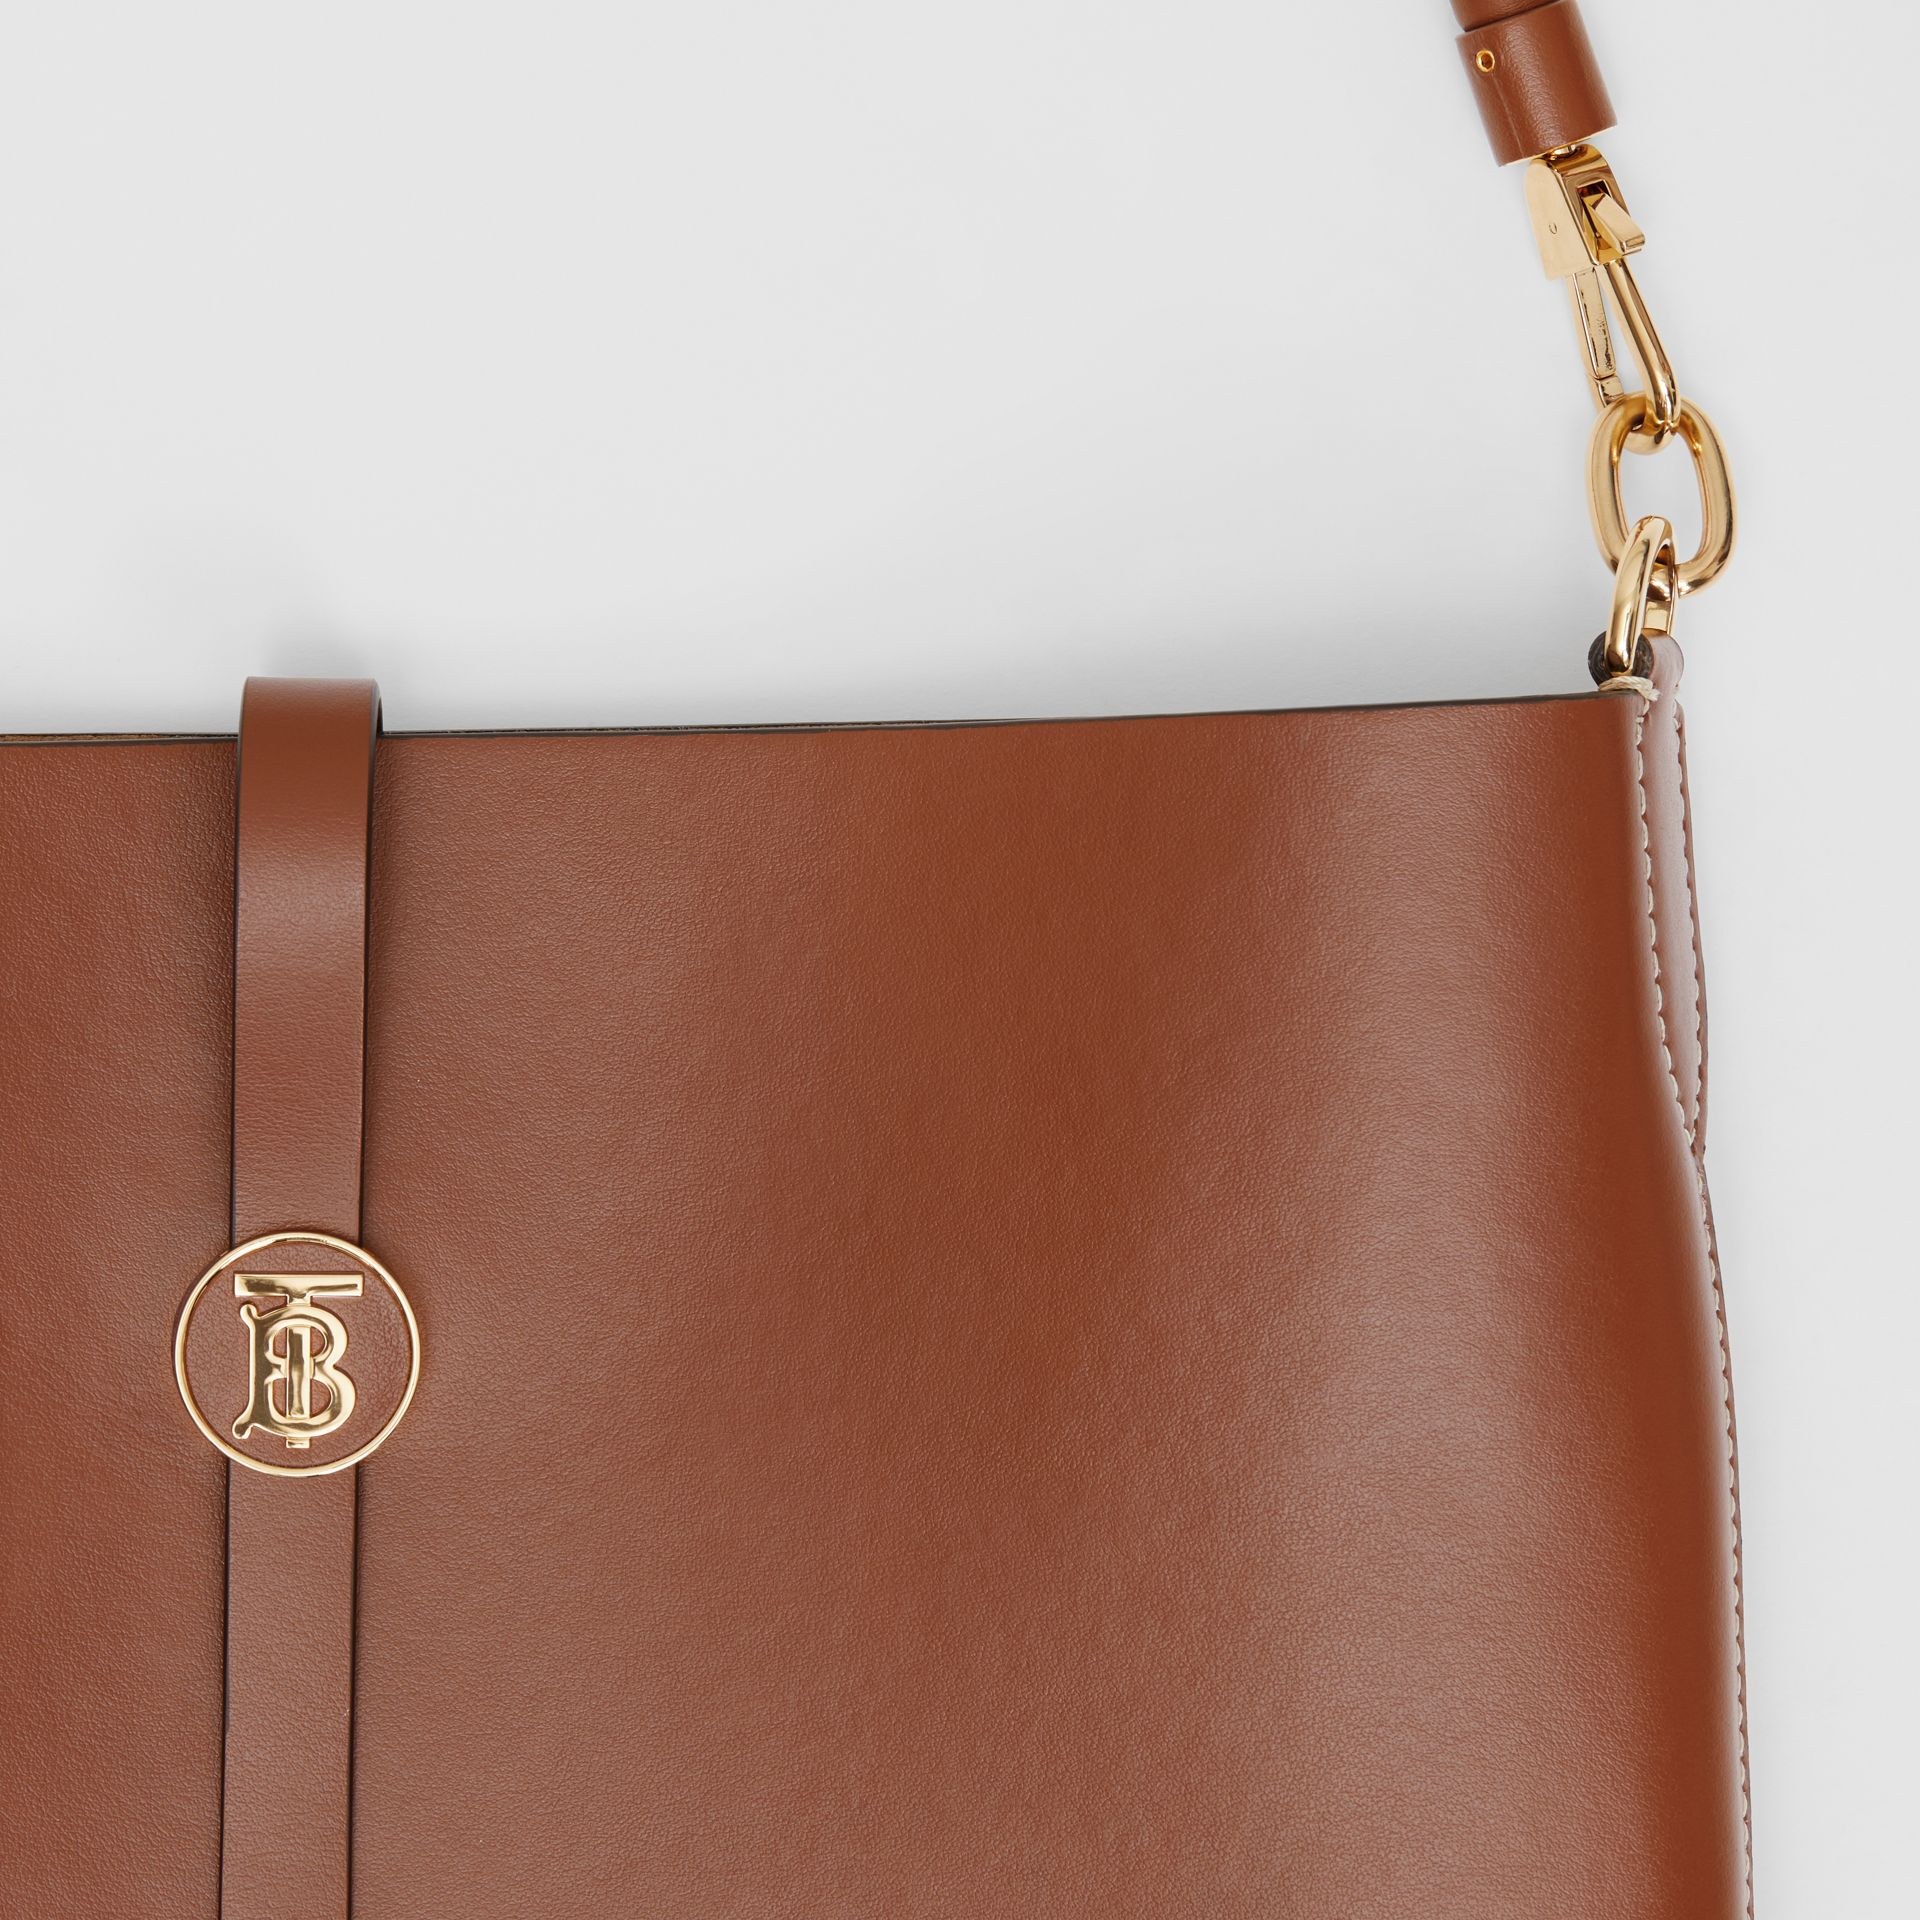 Leather Anne Bag in Tan - Women | Burberry Australia - gallery image 1